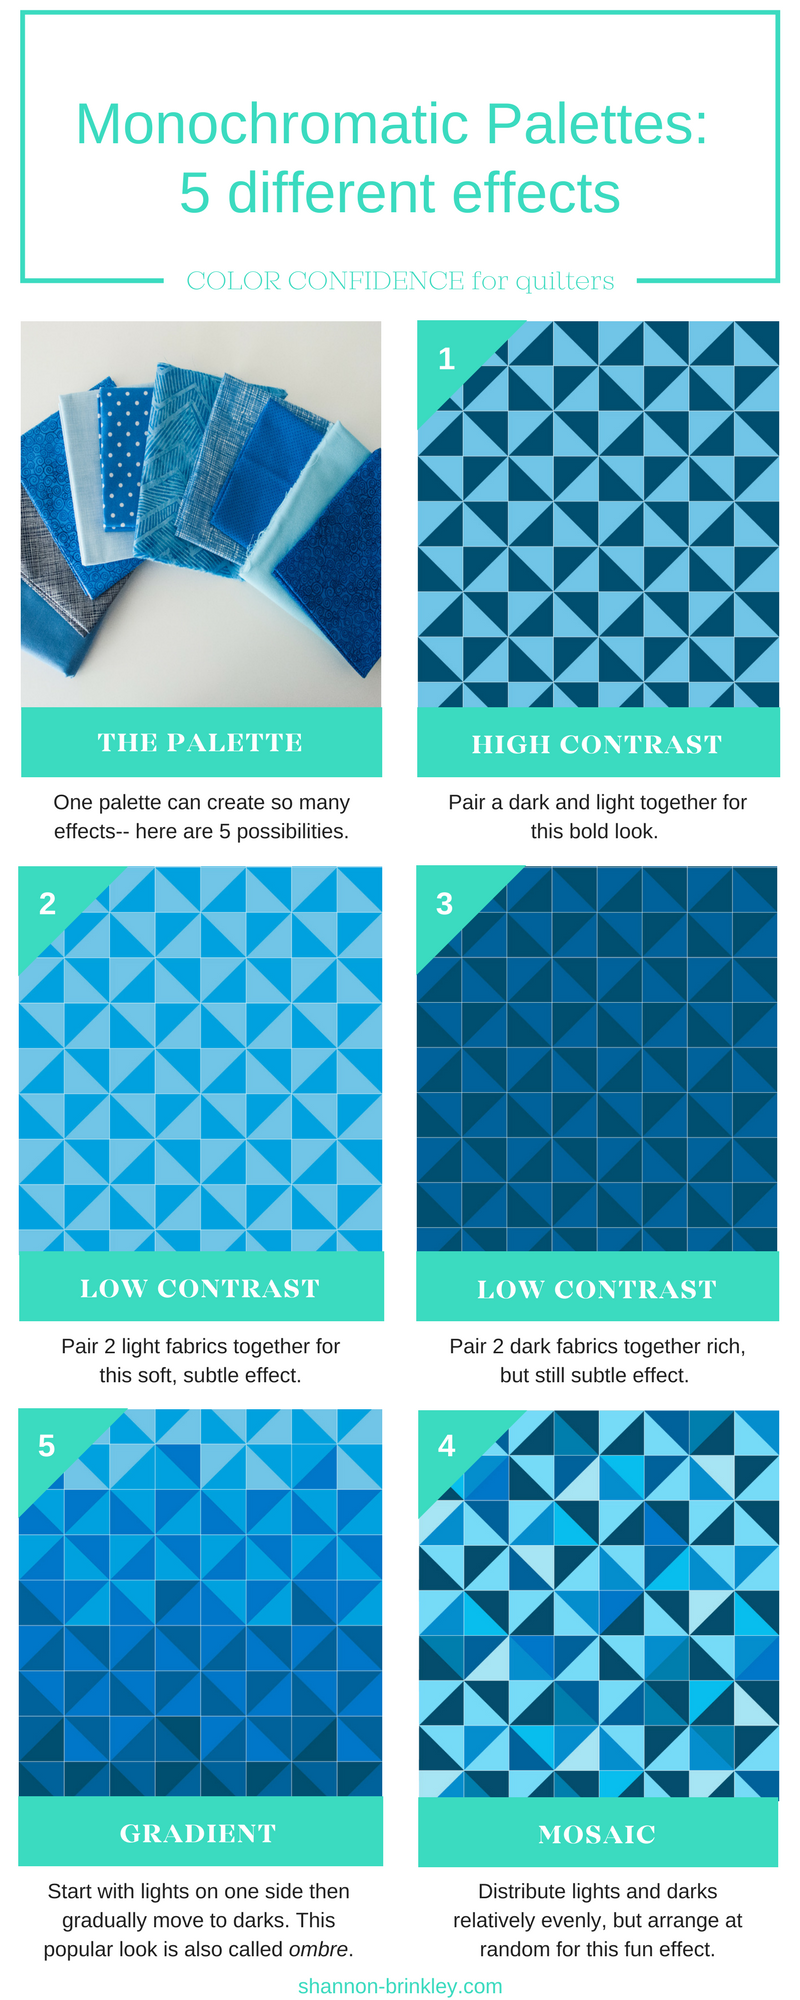 Color Confidence for Quilters -- Monochromatic Palette Effects